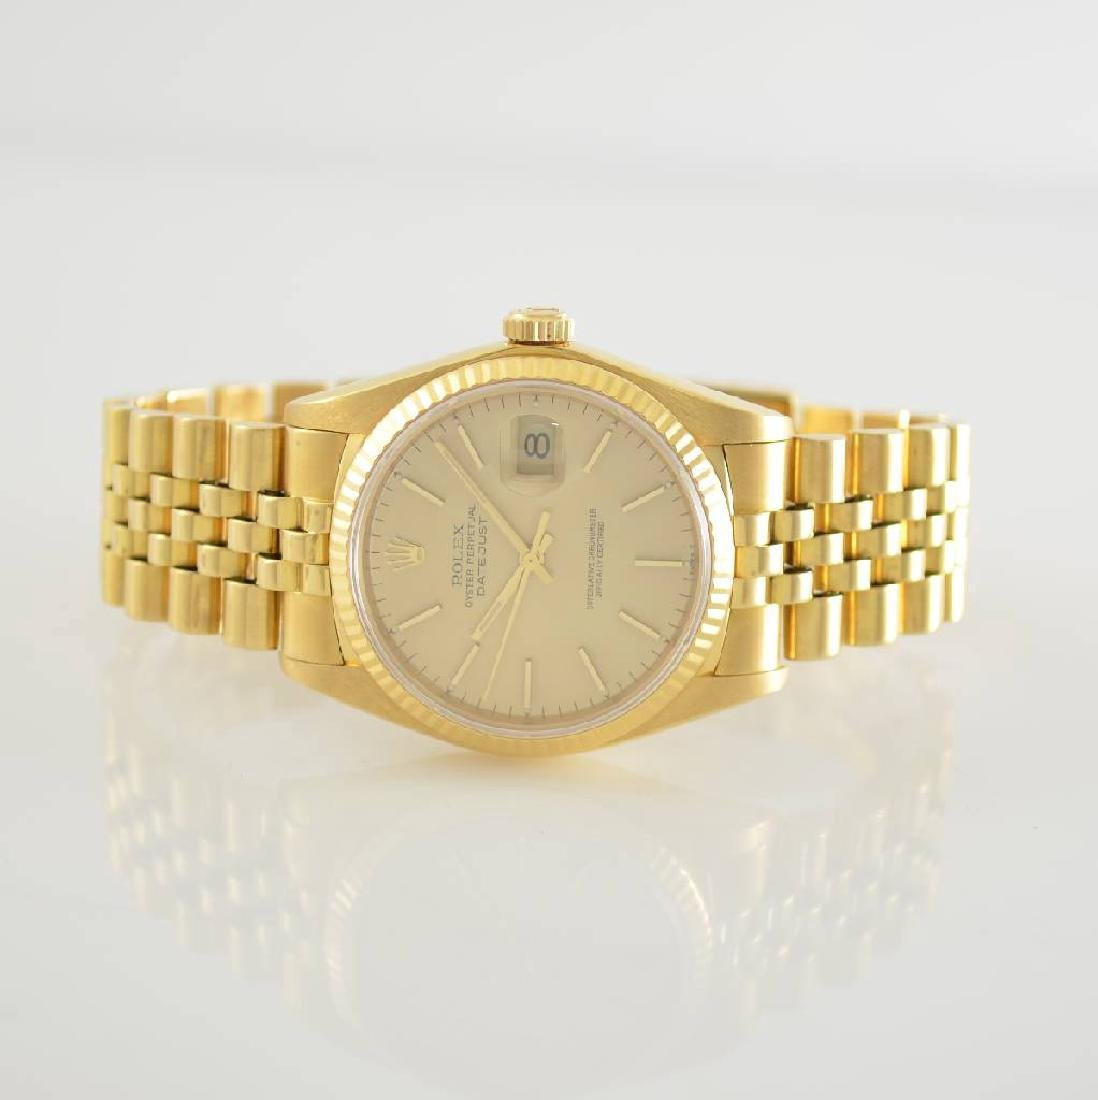 ROLEX 18k yellow gold Oyster Perpetual Datejust